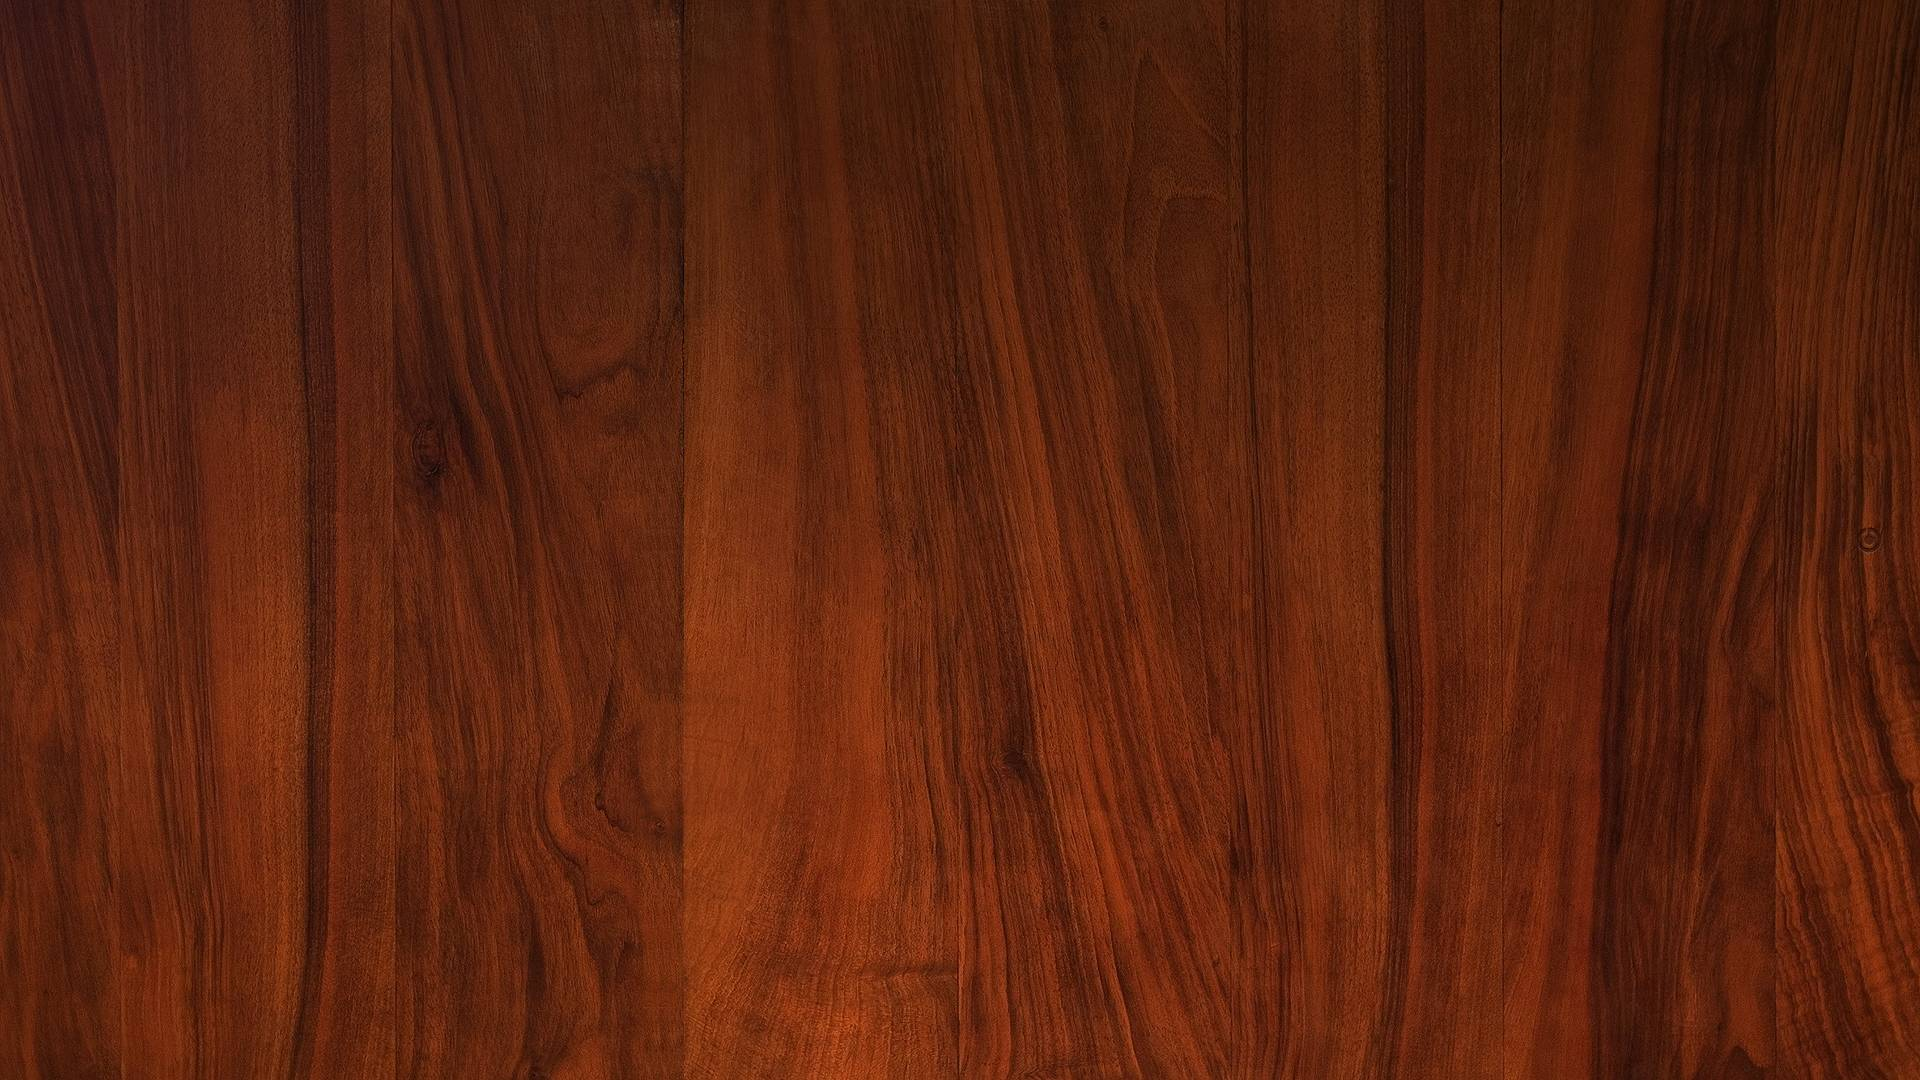 Wood Desktop Backgrounds Wallpaper Cave